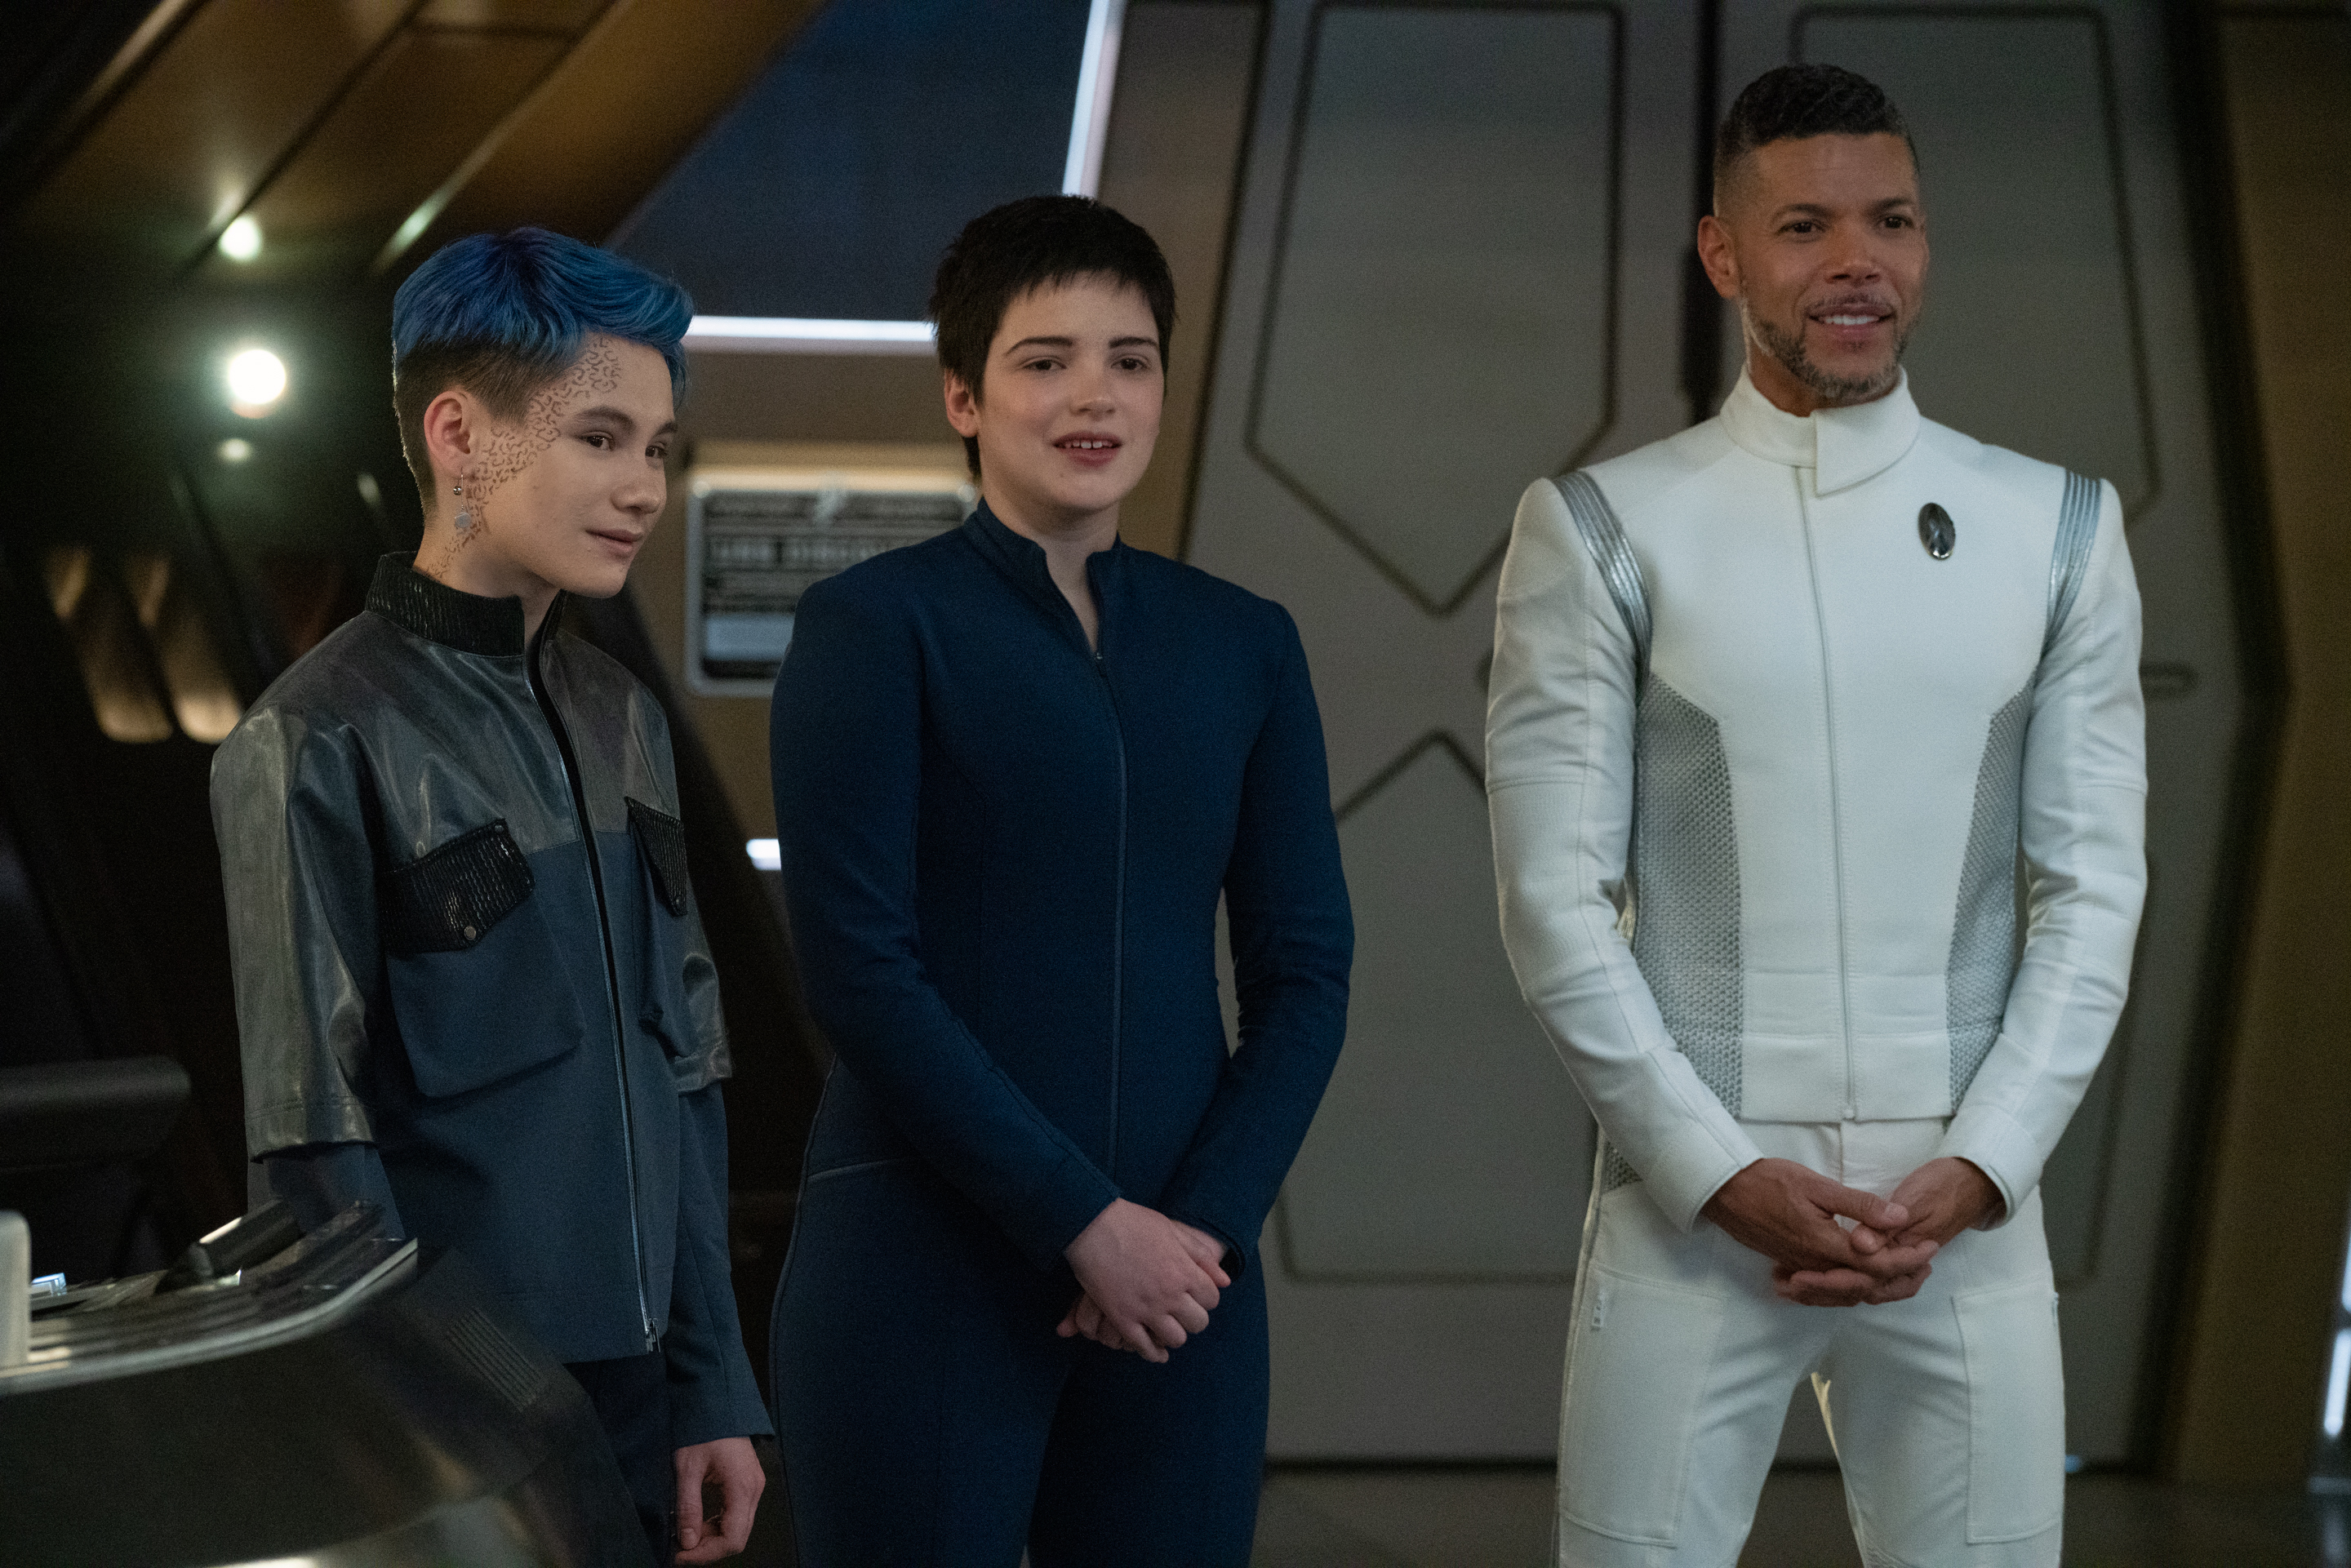 """""""The Hope That is You, Part 2"""" — Ep#313 — Pictured: Ian Alexander as Gray, Blu del Barrio as Adira and Wilson Cruz as Dr. Hugh Culber of the CBS All Access series STAR TREK: DISCOVERY. Photo Cr: Michael Gibson/CBS ©2020 CBS Interactive, Inc. All Rights Reserved."""